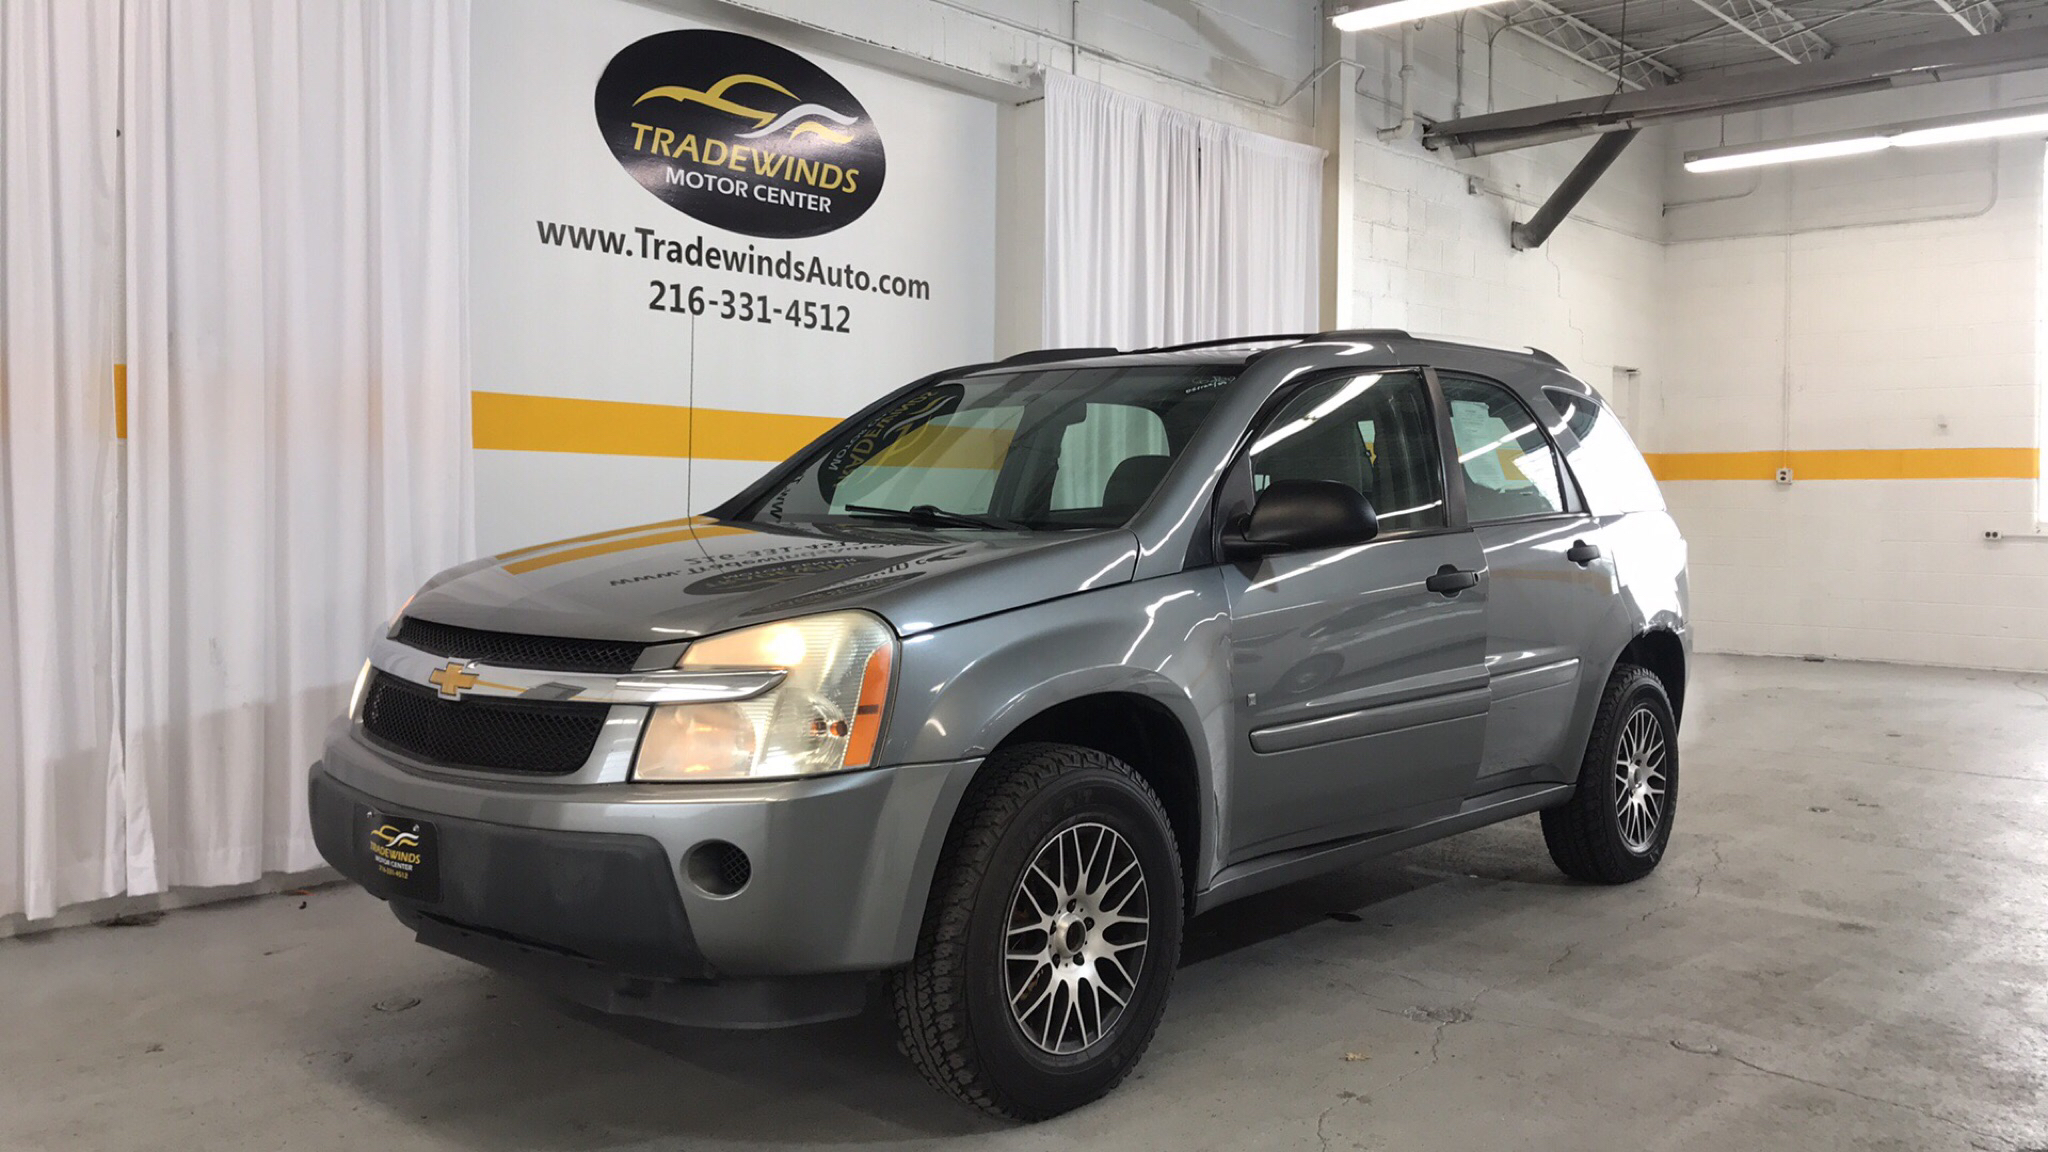 2006 CHEVROLET EQUINOX LS for sale at Tradewinds Motor Center